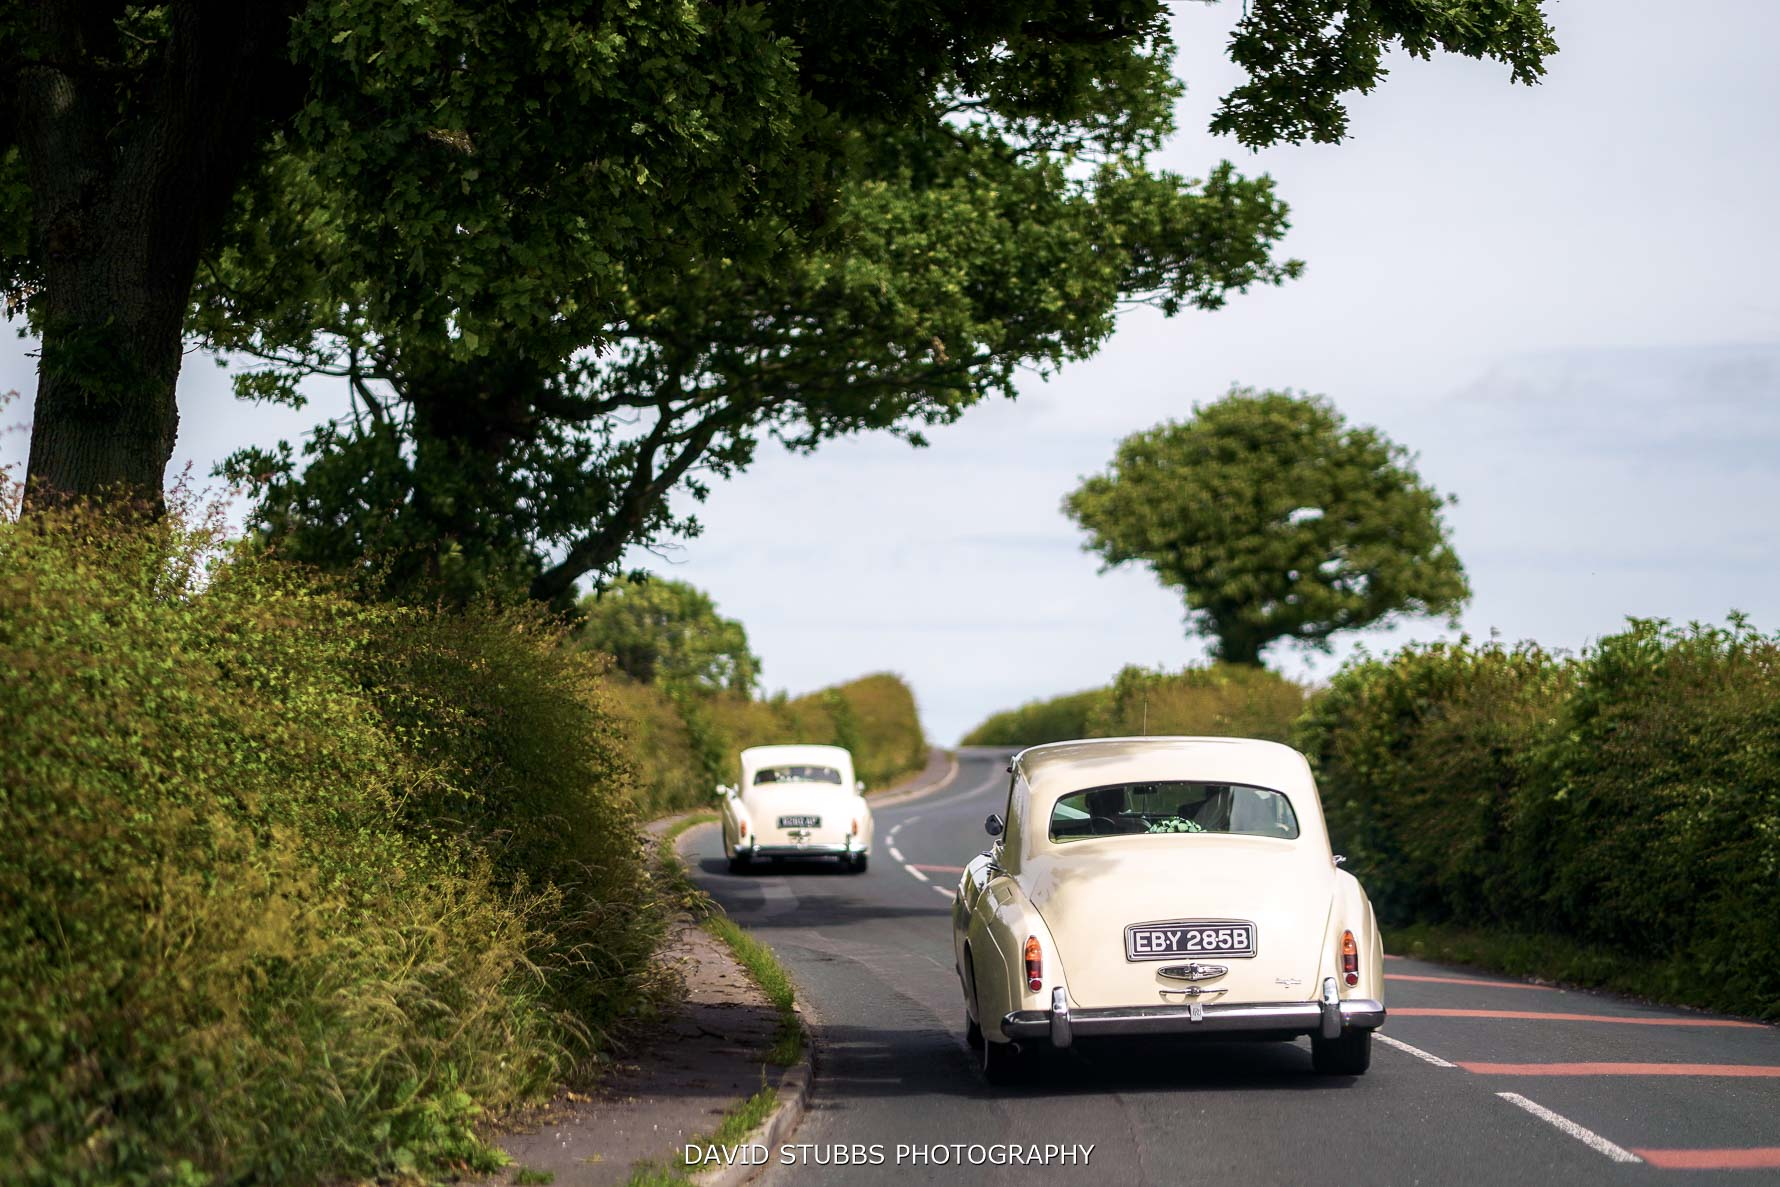 the wedding cars travelling to gibbon bridge